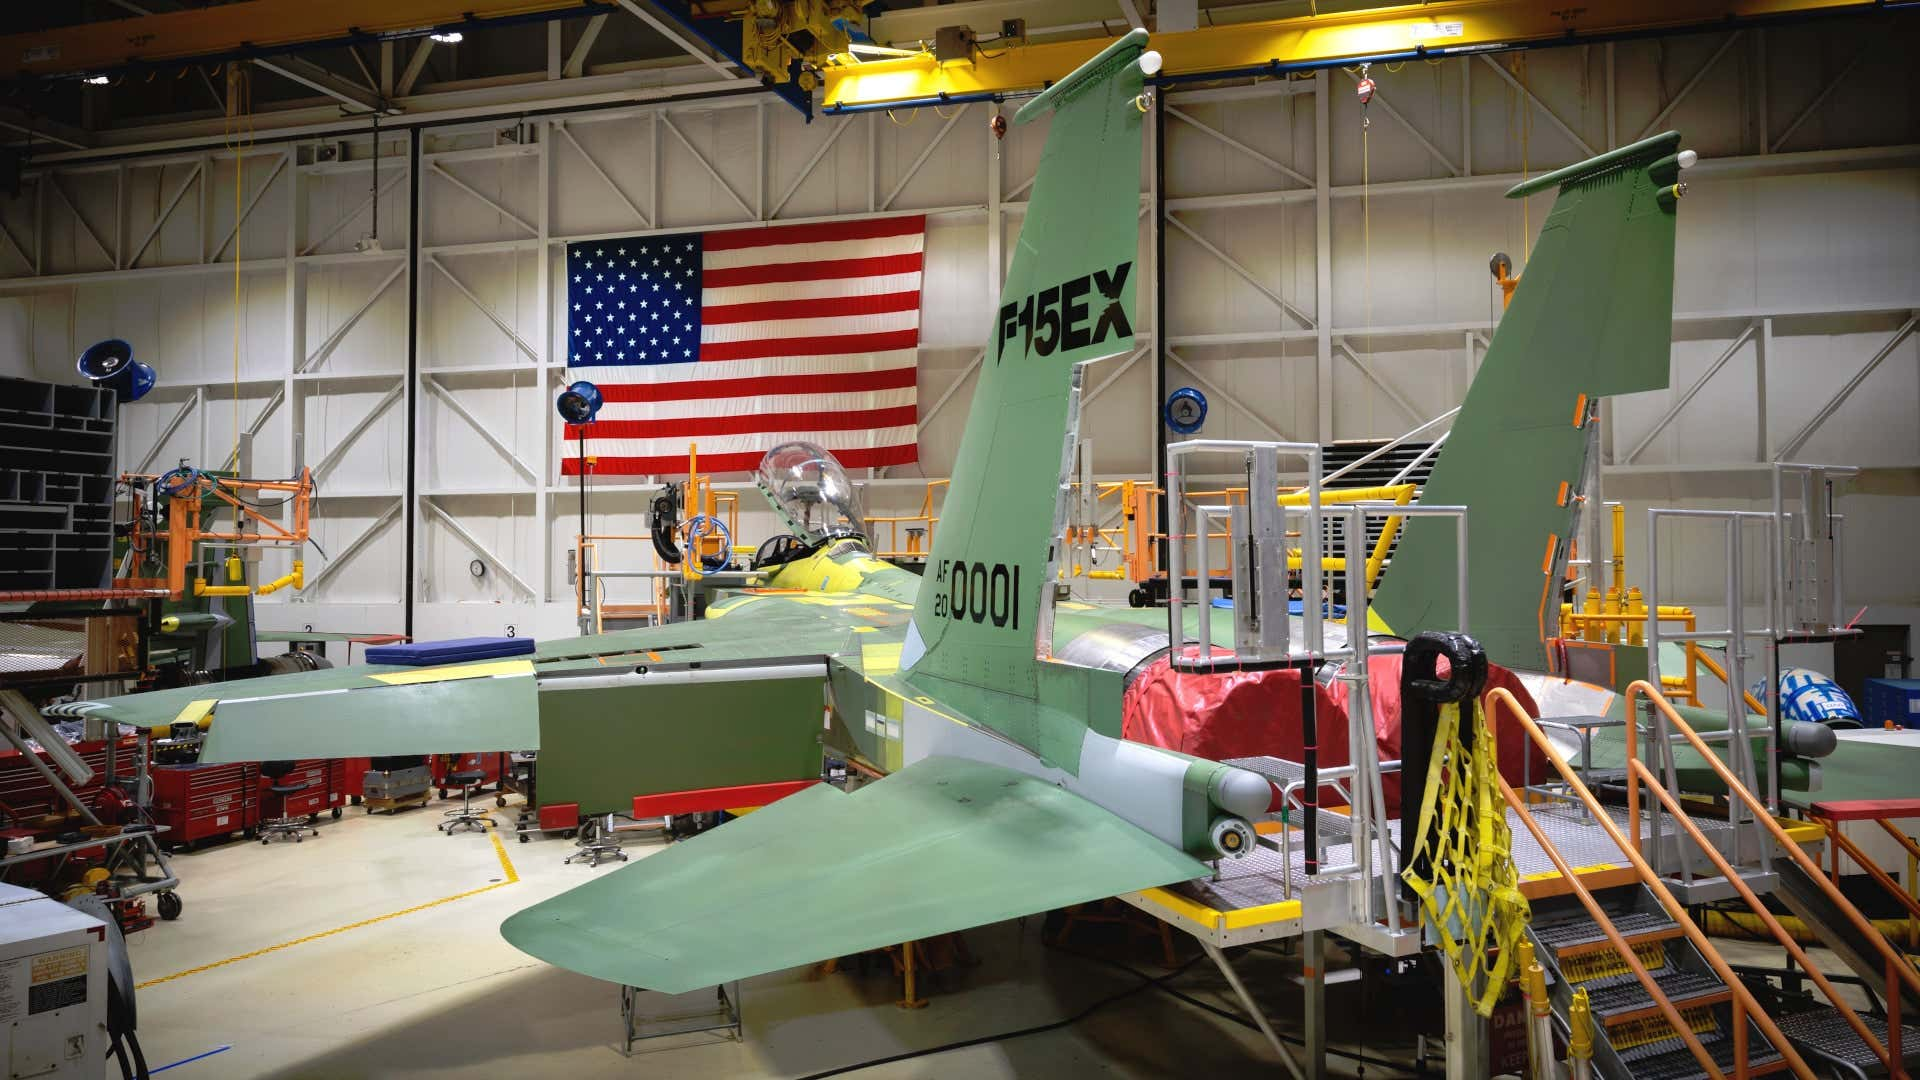 One of the first new Boeing F-15EX jets under construction for the U.S. Air Force.